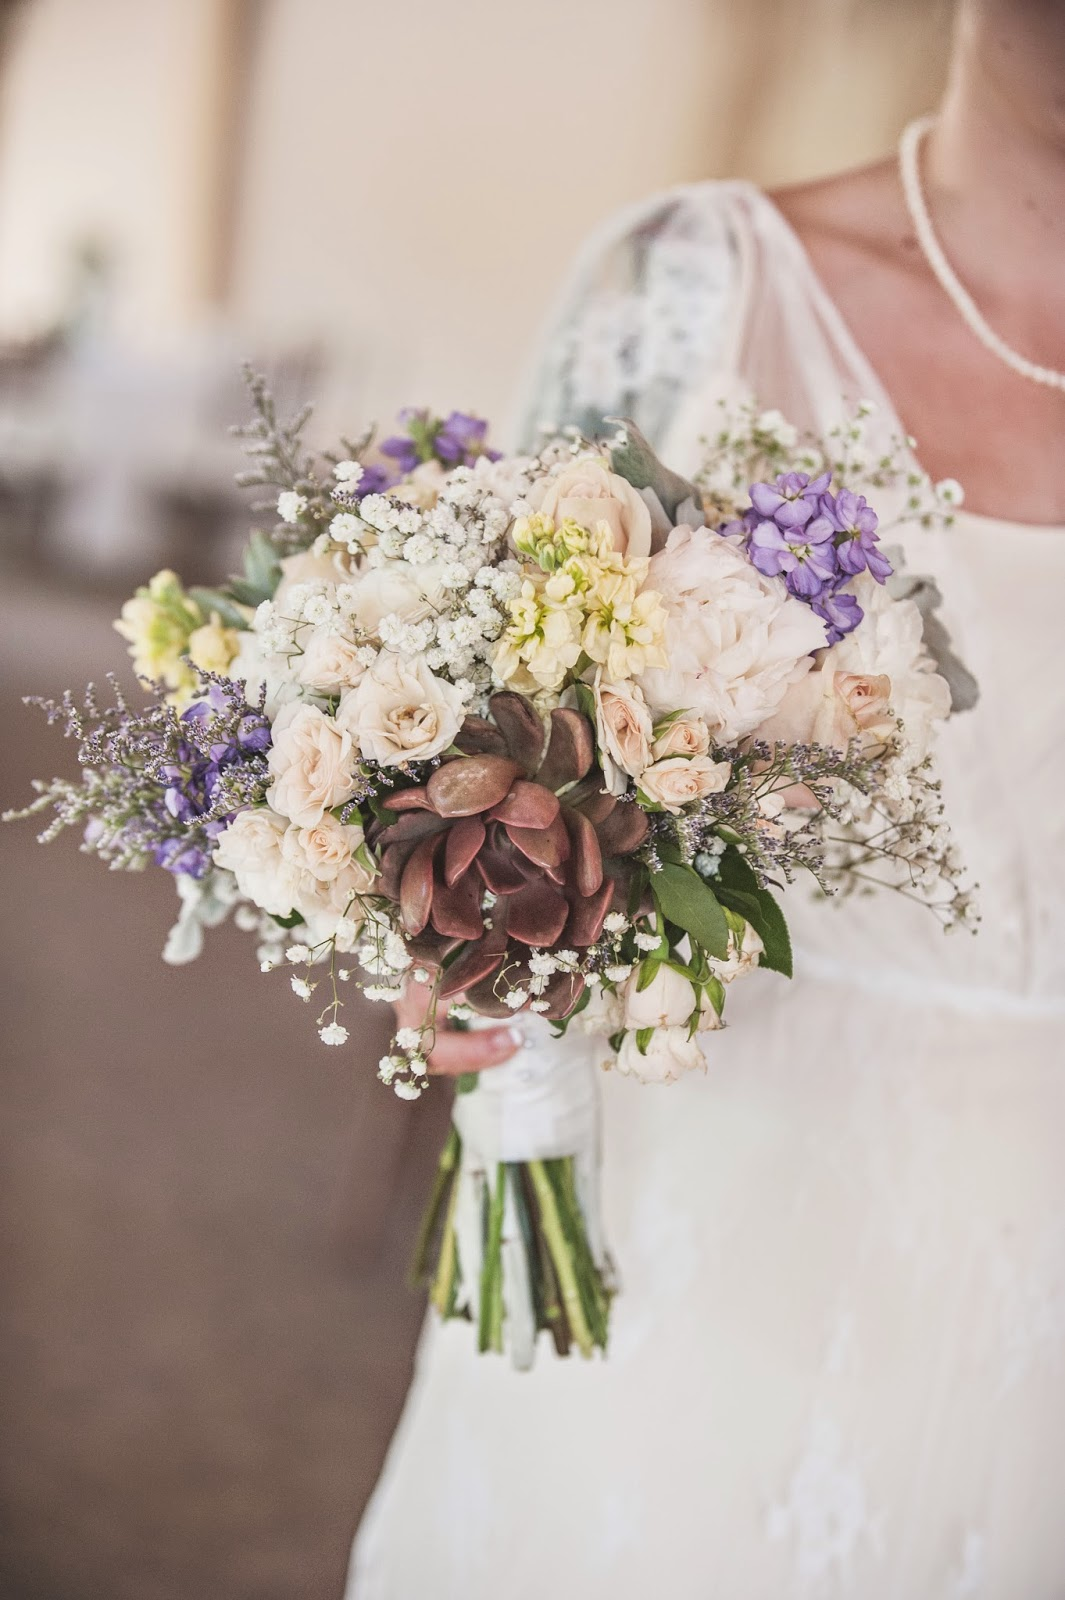 Wedding Flowers with Succluents: Pendelton's Flower's